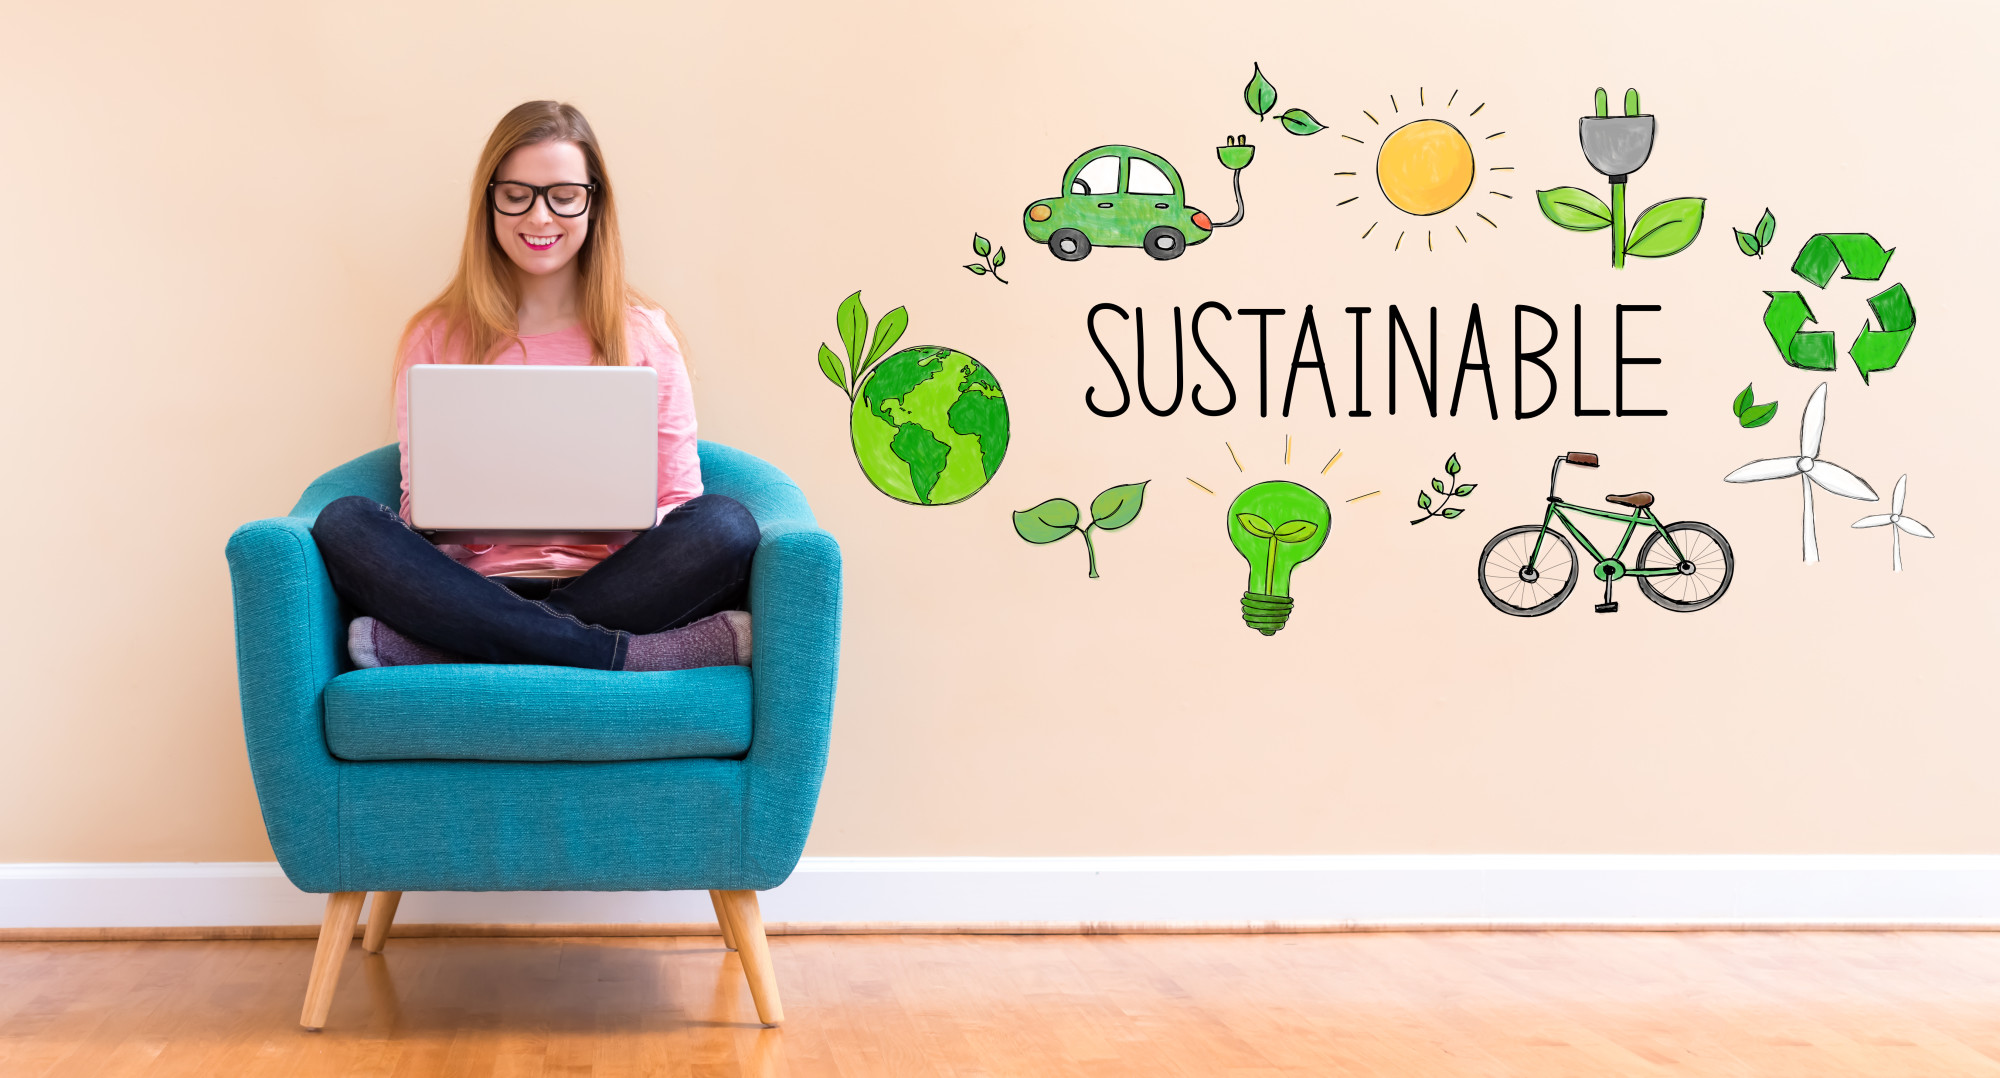 3 Tips to Live a More Sustainable Lifestyle